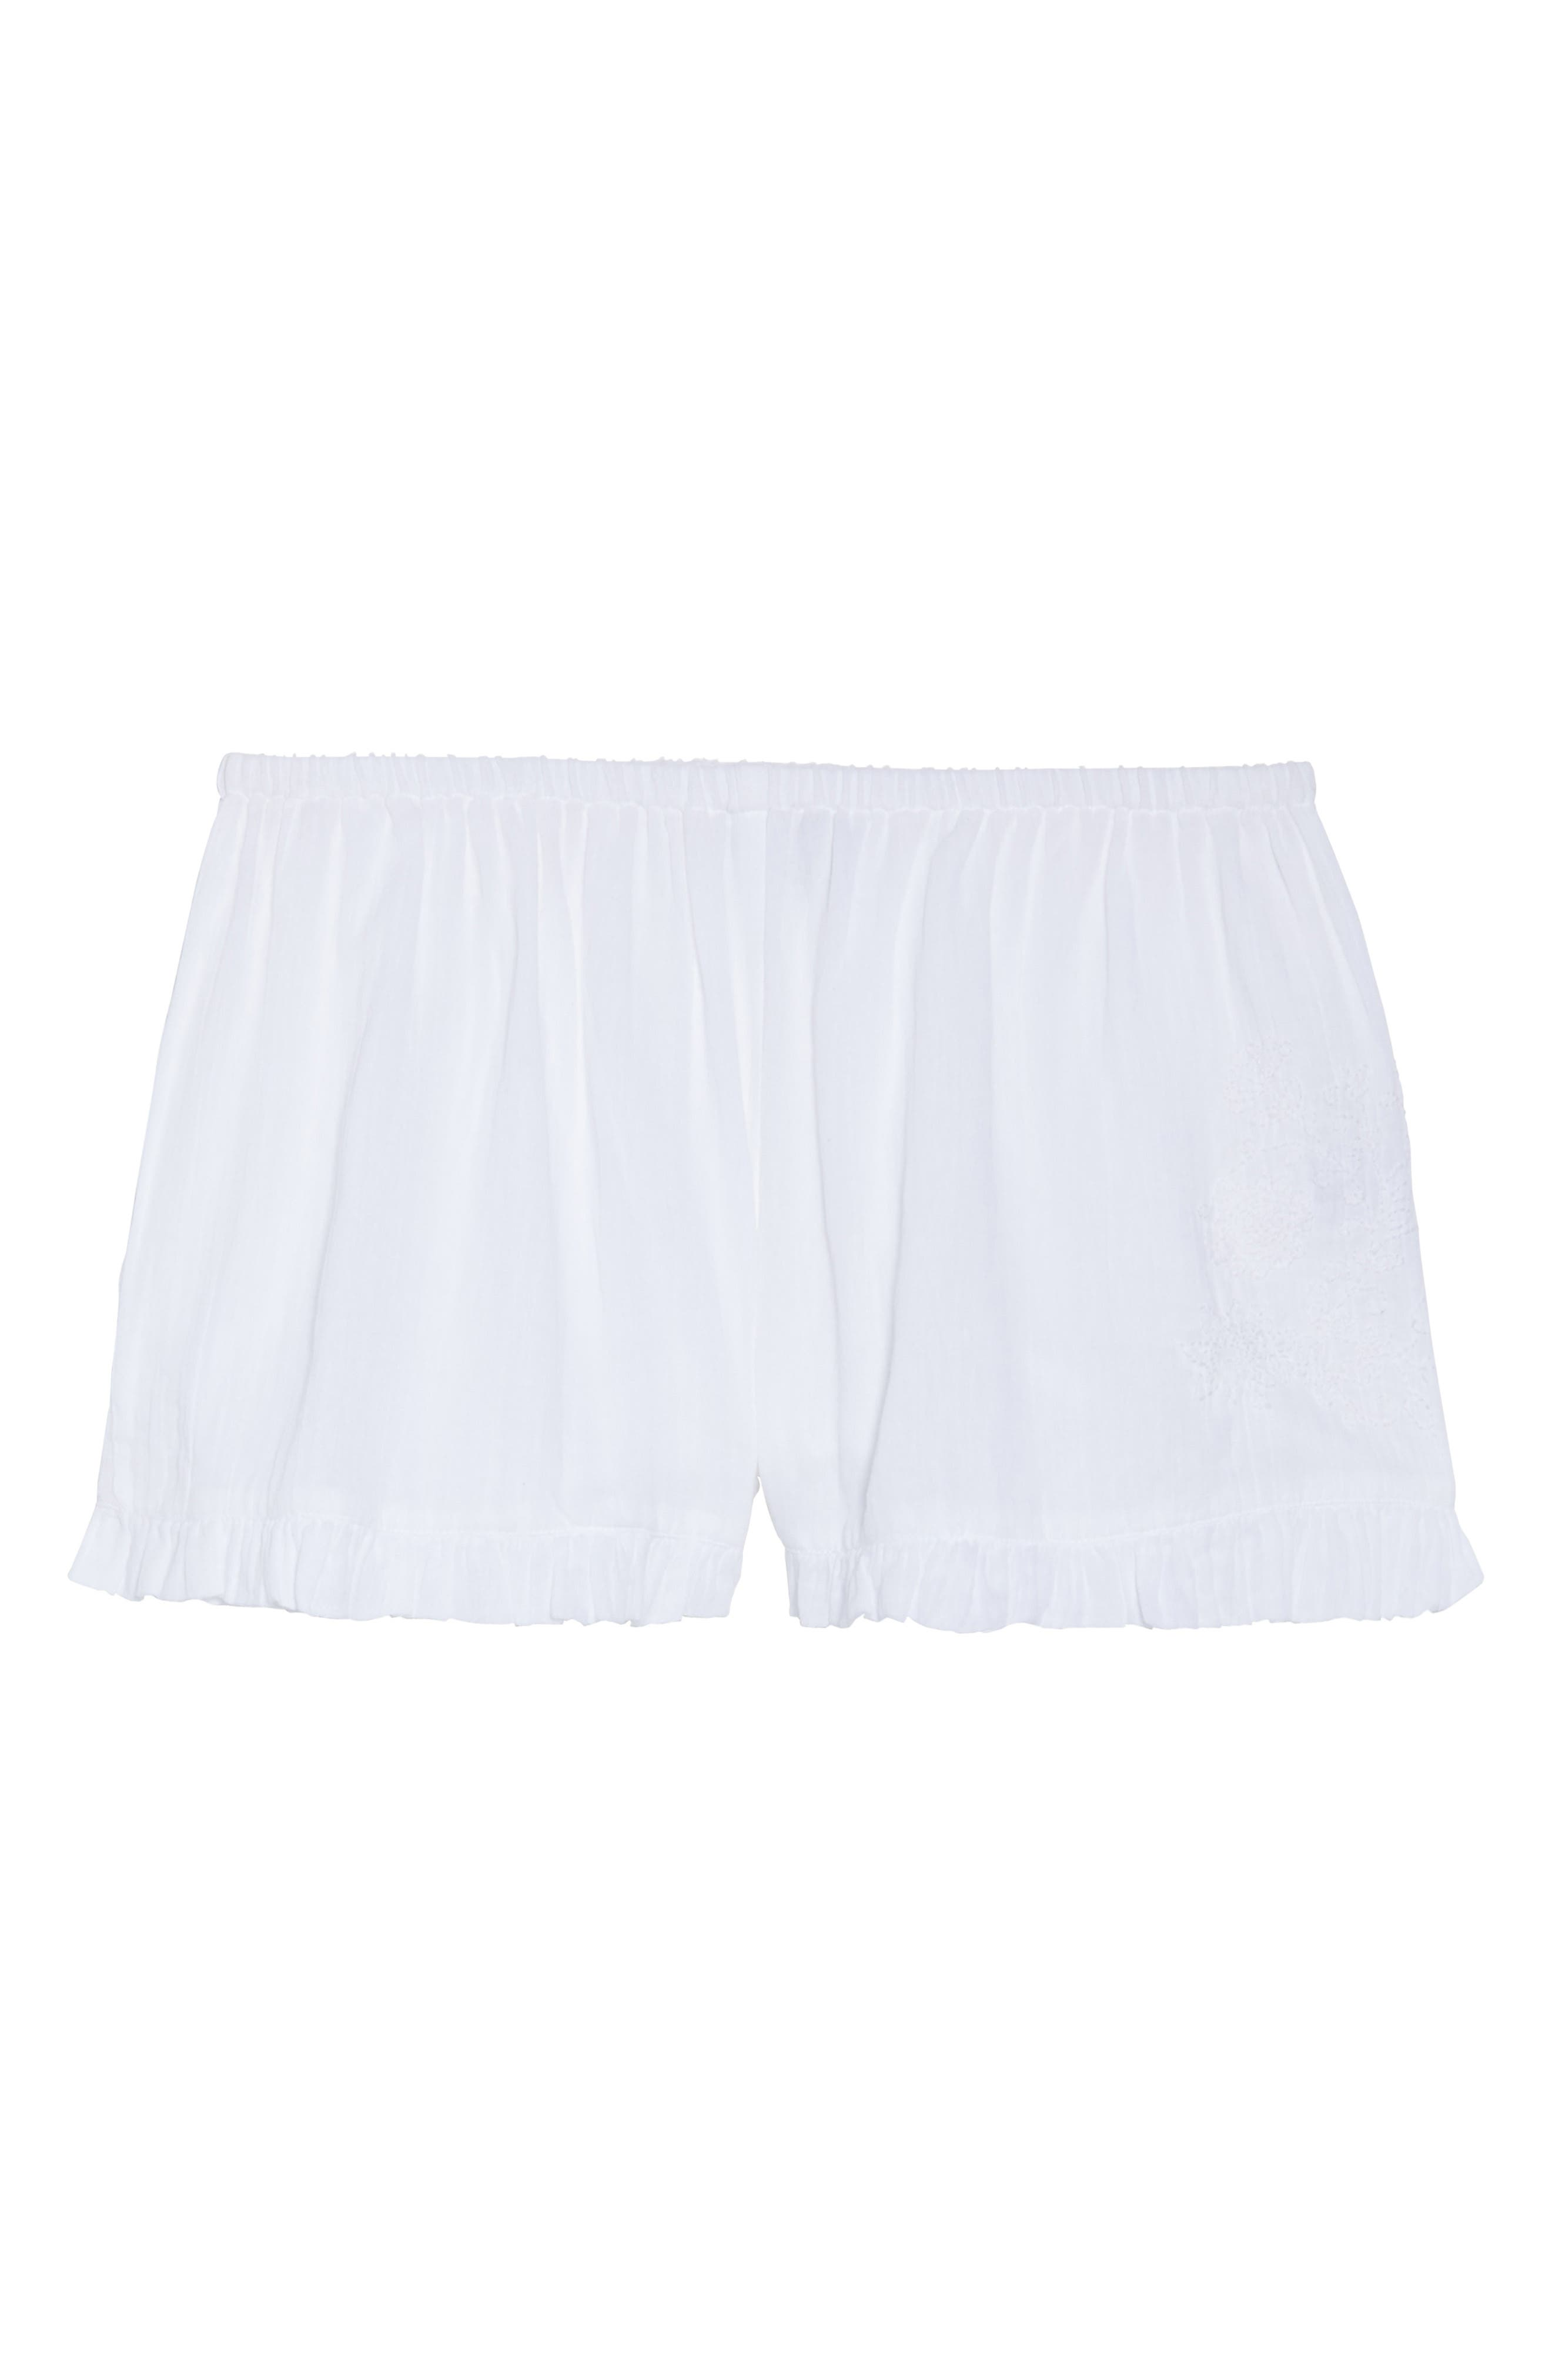 Cambria Ruffle Sleep Shorts,                             Alternate thumbnail 5, color,                             White